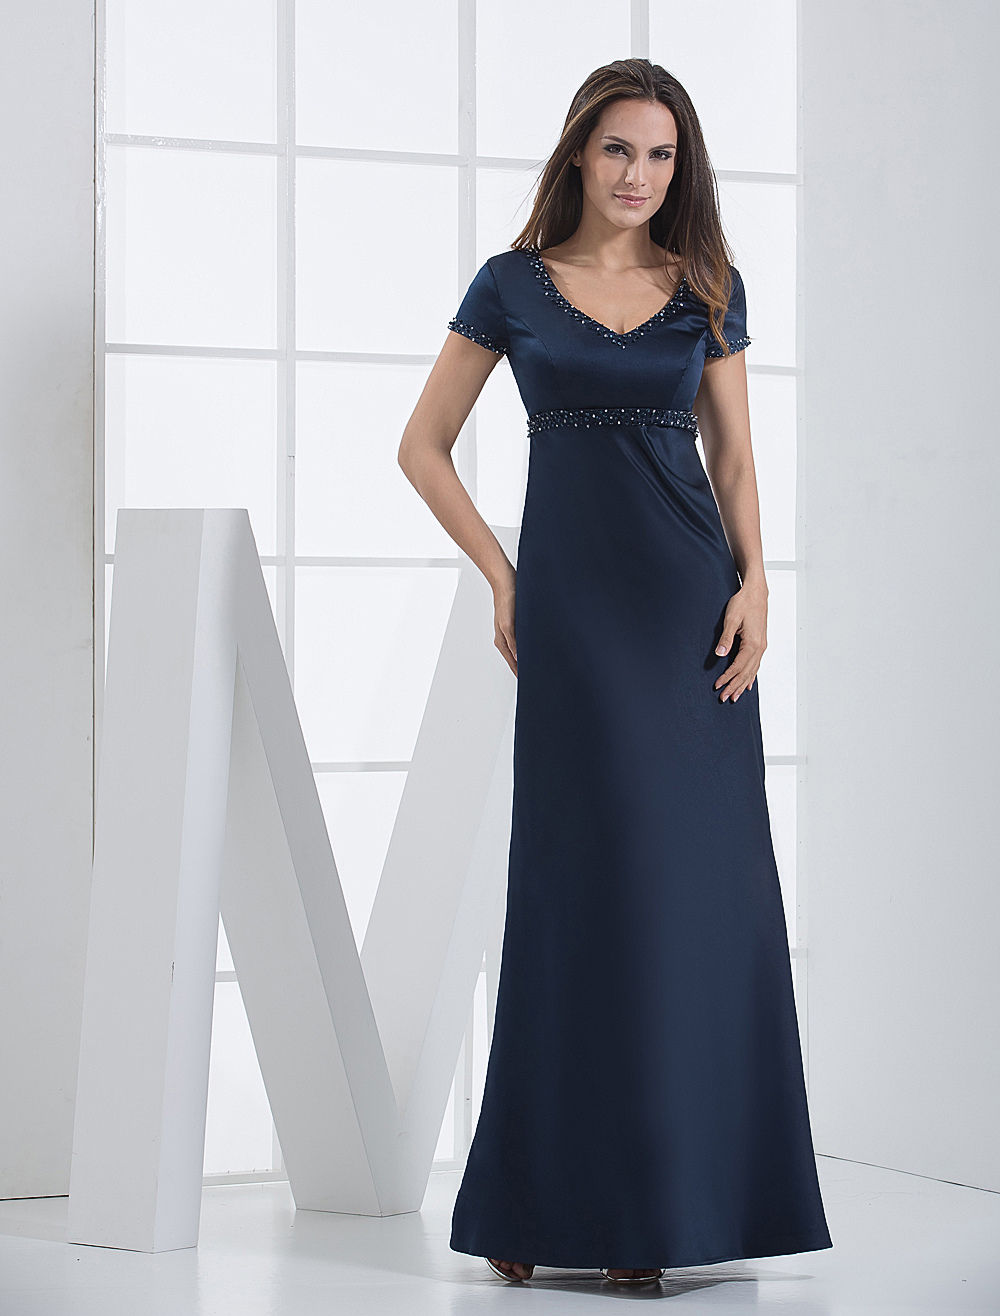 Short Sleeved Floor Length Satin Bridesmaid Dress